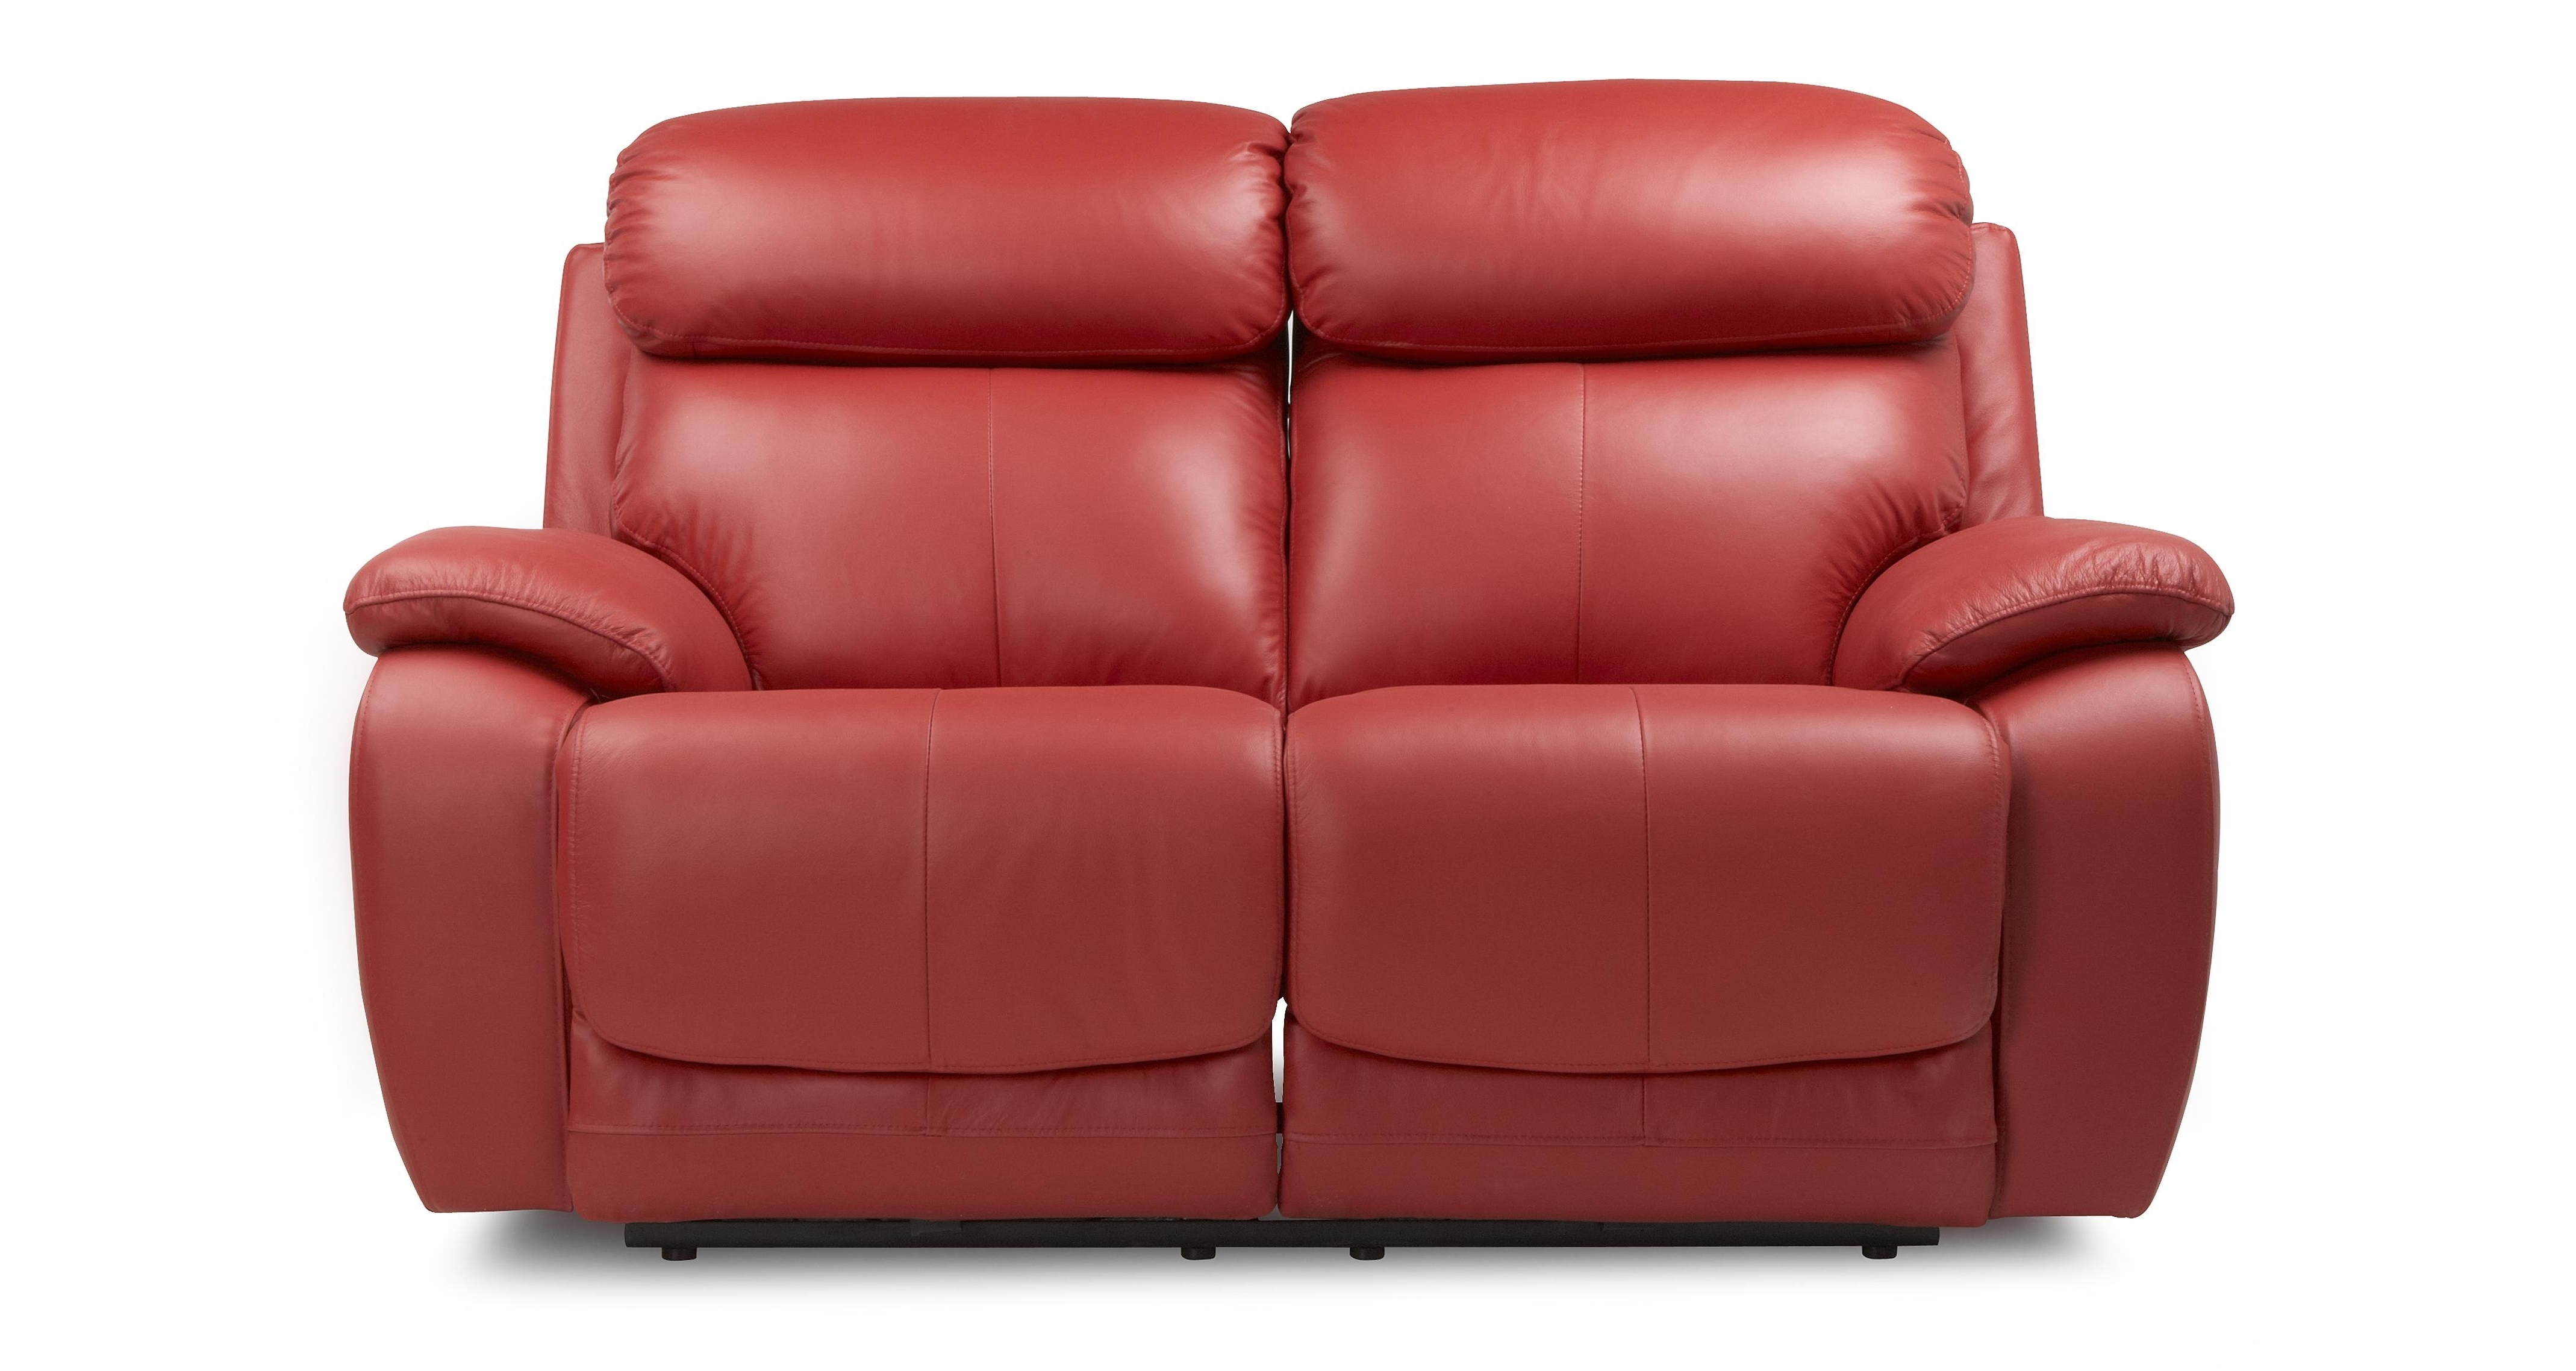 Most Current 2 Seater Recliner Leather Sofas For Electric Recliner Corner Sofa Tags : 2 Seater Electric Recliner (View 9 of 15)